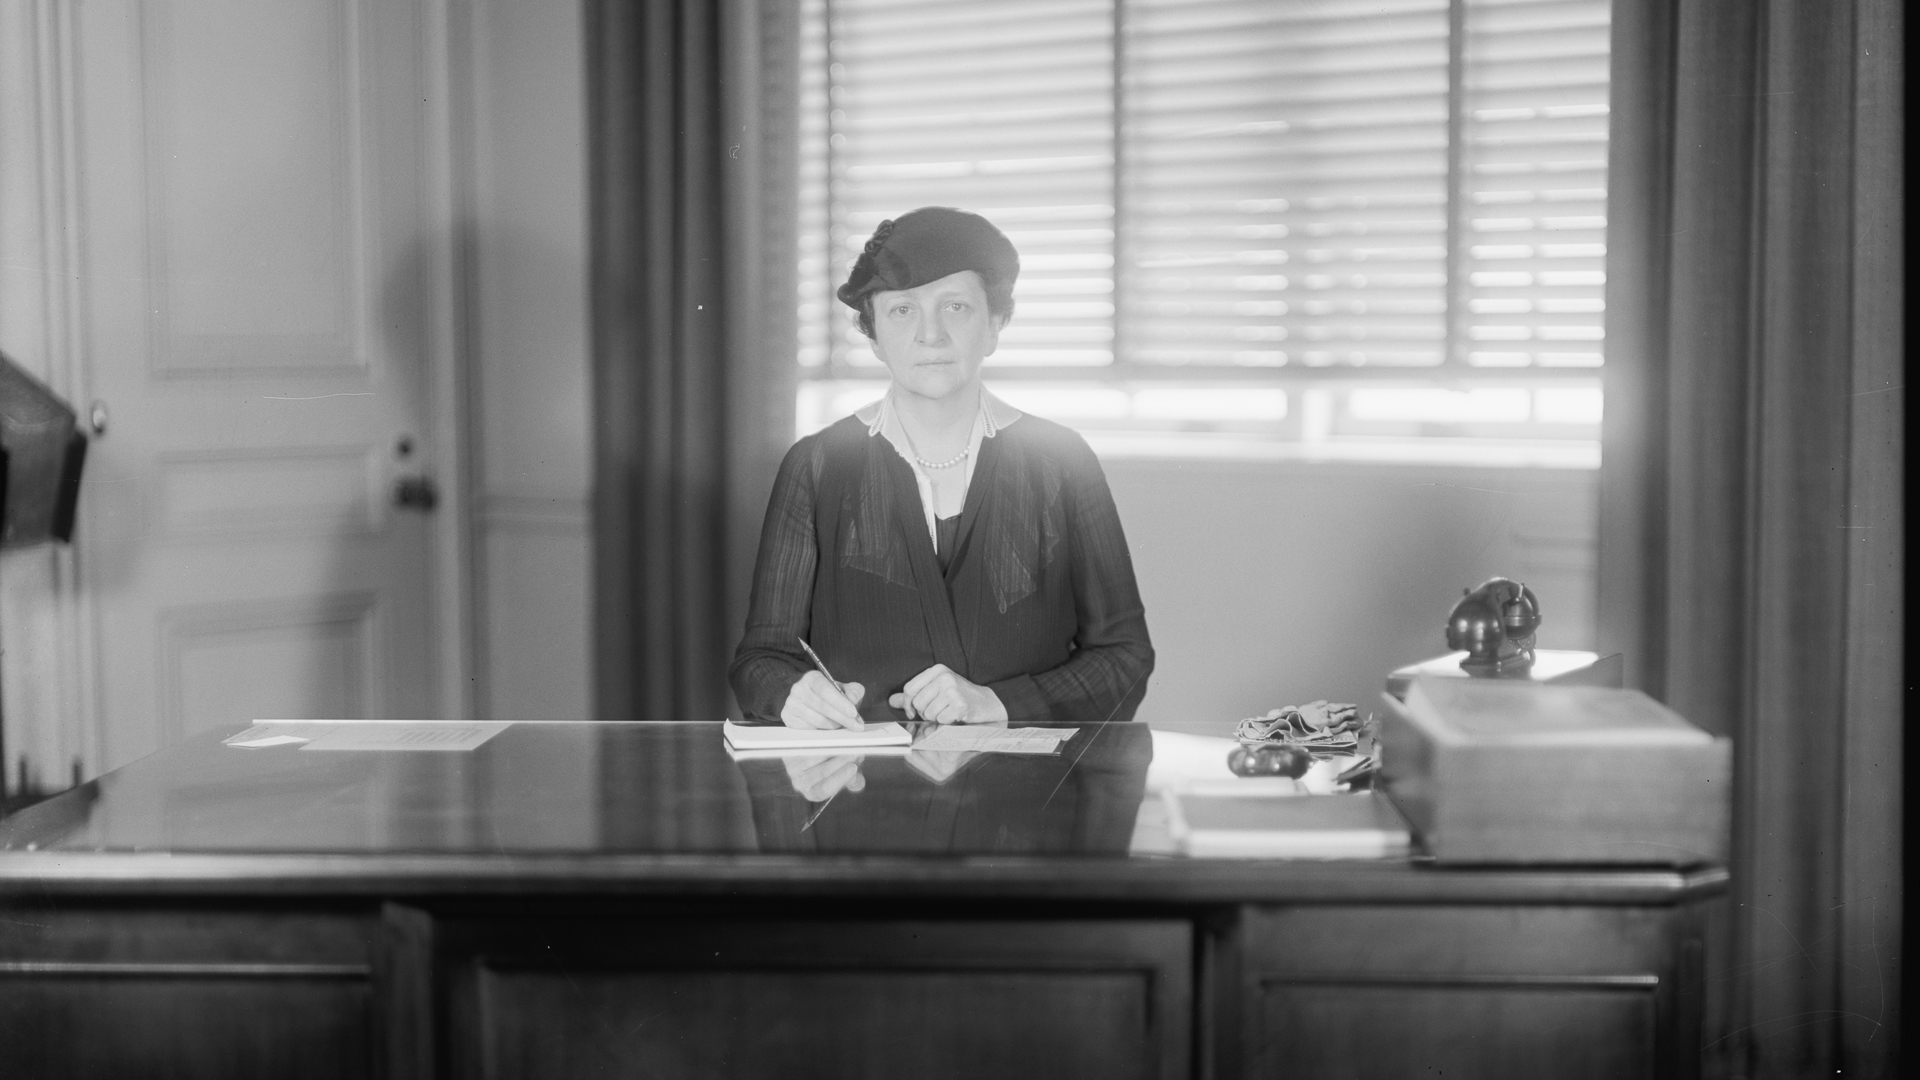 Frances Perkins at her desk wearing a tricorn hat